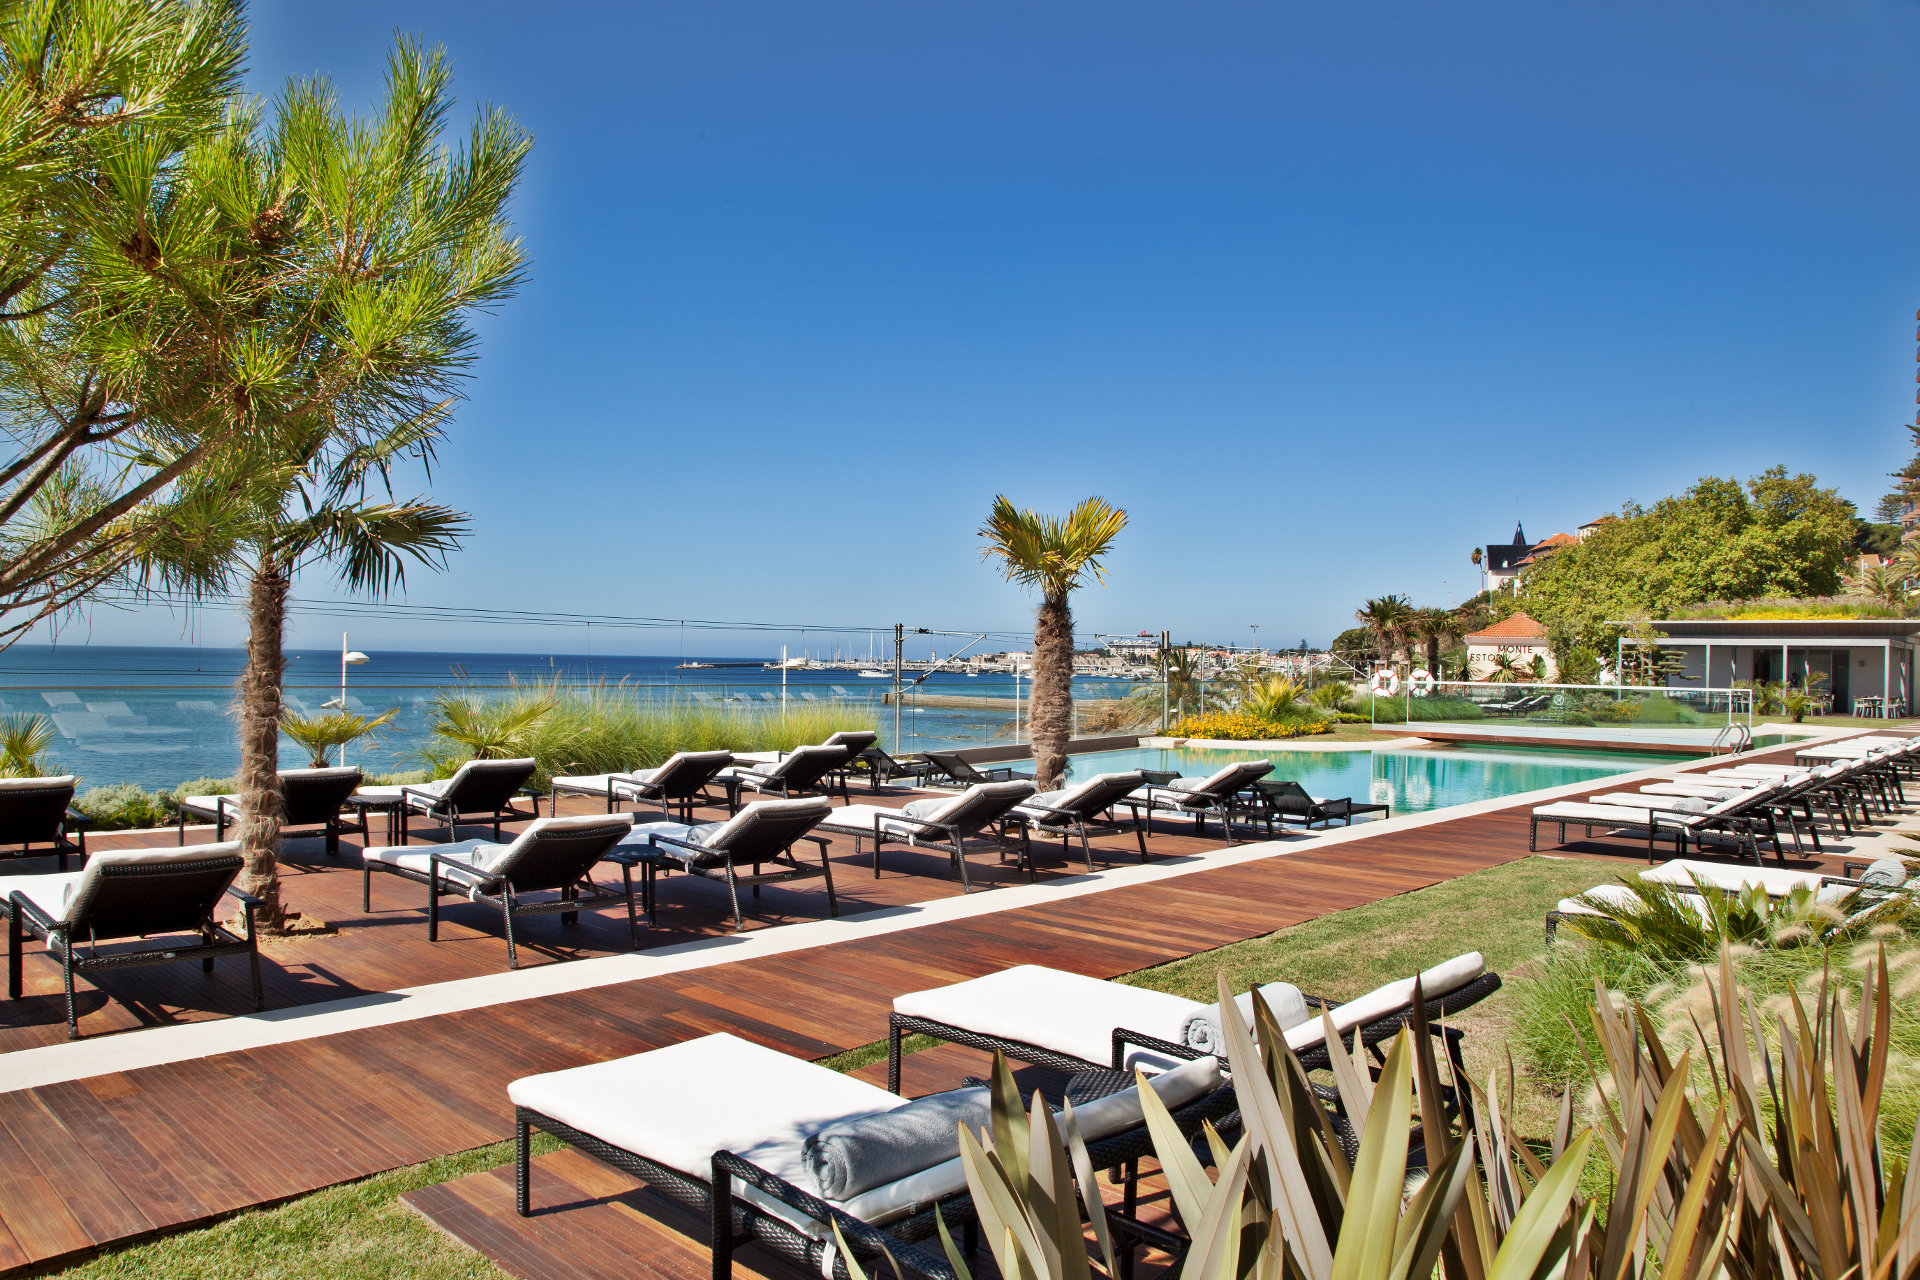 Best Hotels in Portugal: InterContinental Estoril best hotels in portugal Best Hotels in Portugal You Can't Miss luxury tours in portugal intercontinentalestoril 3